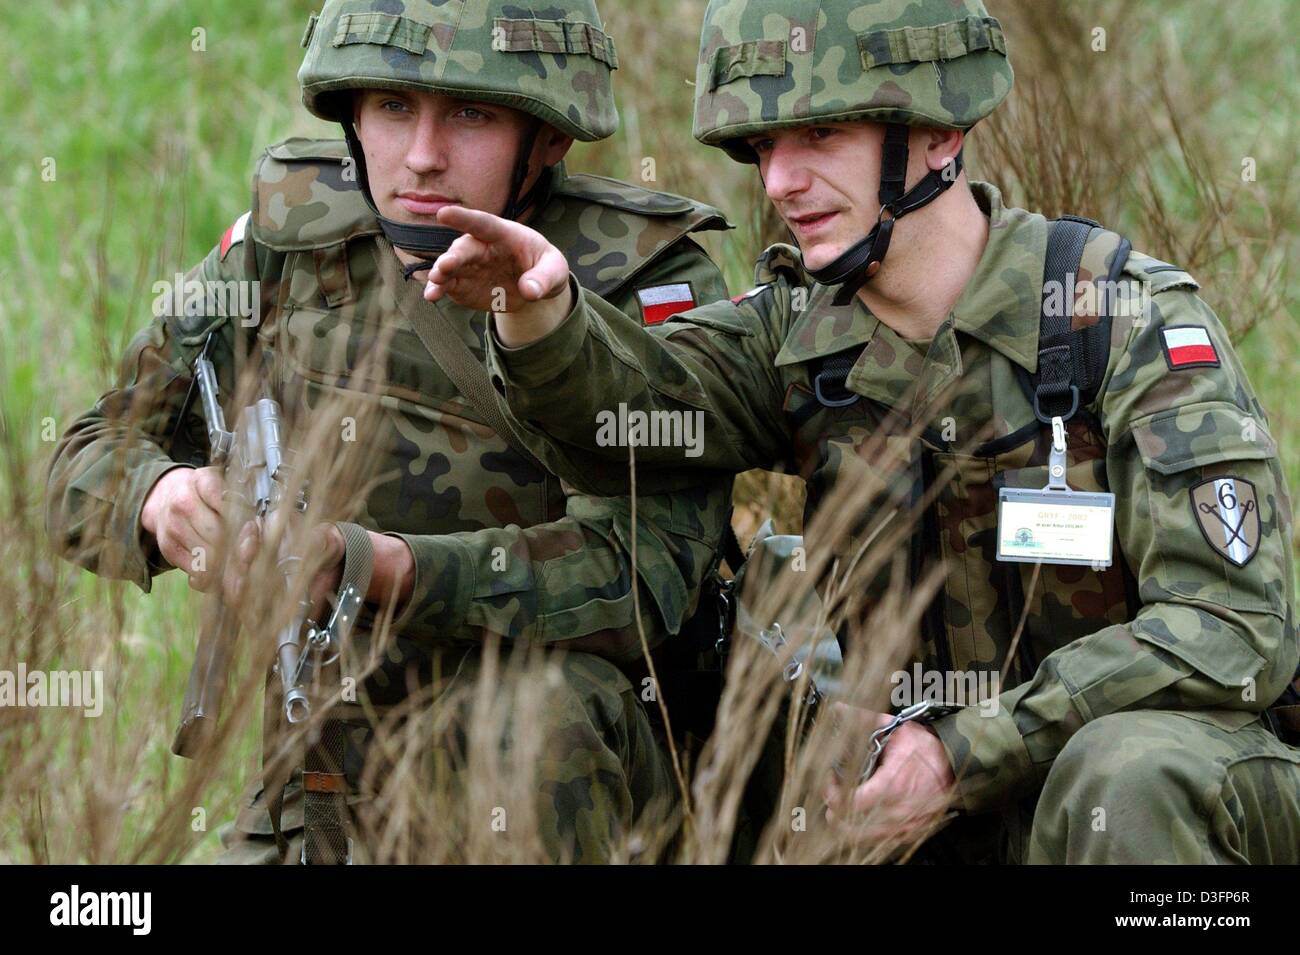 (dpa) - Two polish soldiers are pictured during a multinational military drill near Zlocieniec, Poland, 10 May 2003. Stock Photo